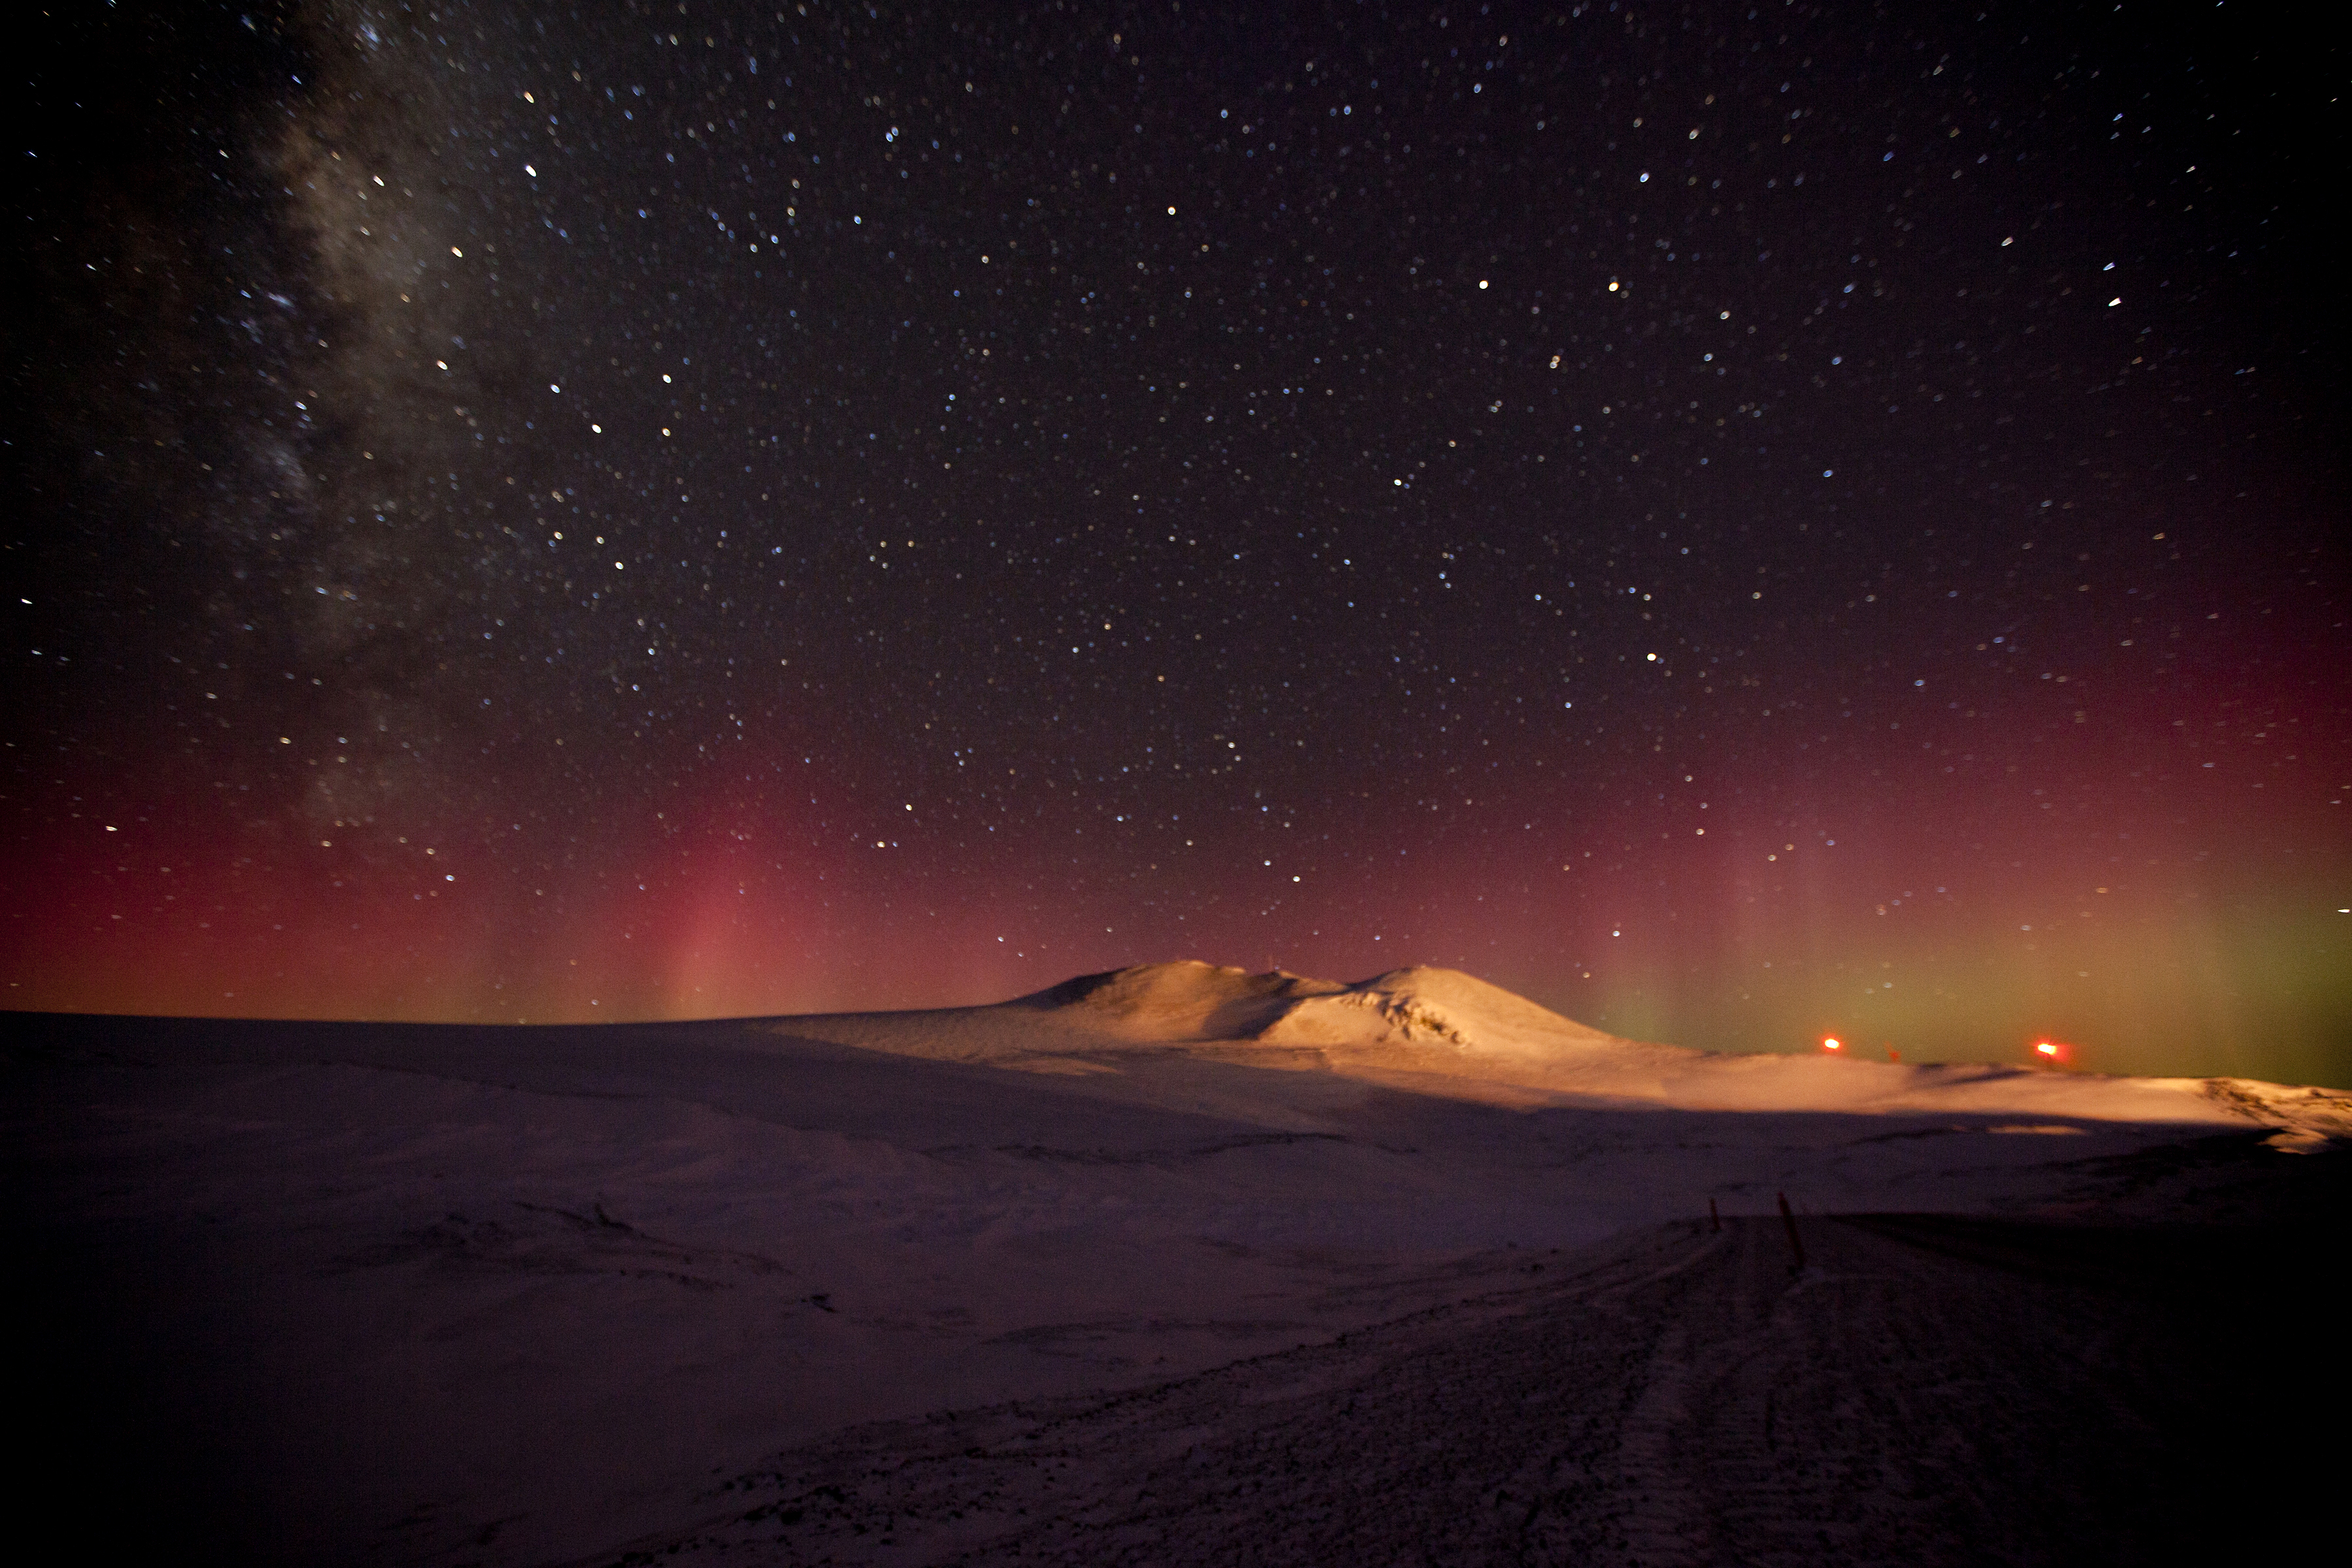 aurora australis and the Milky Way